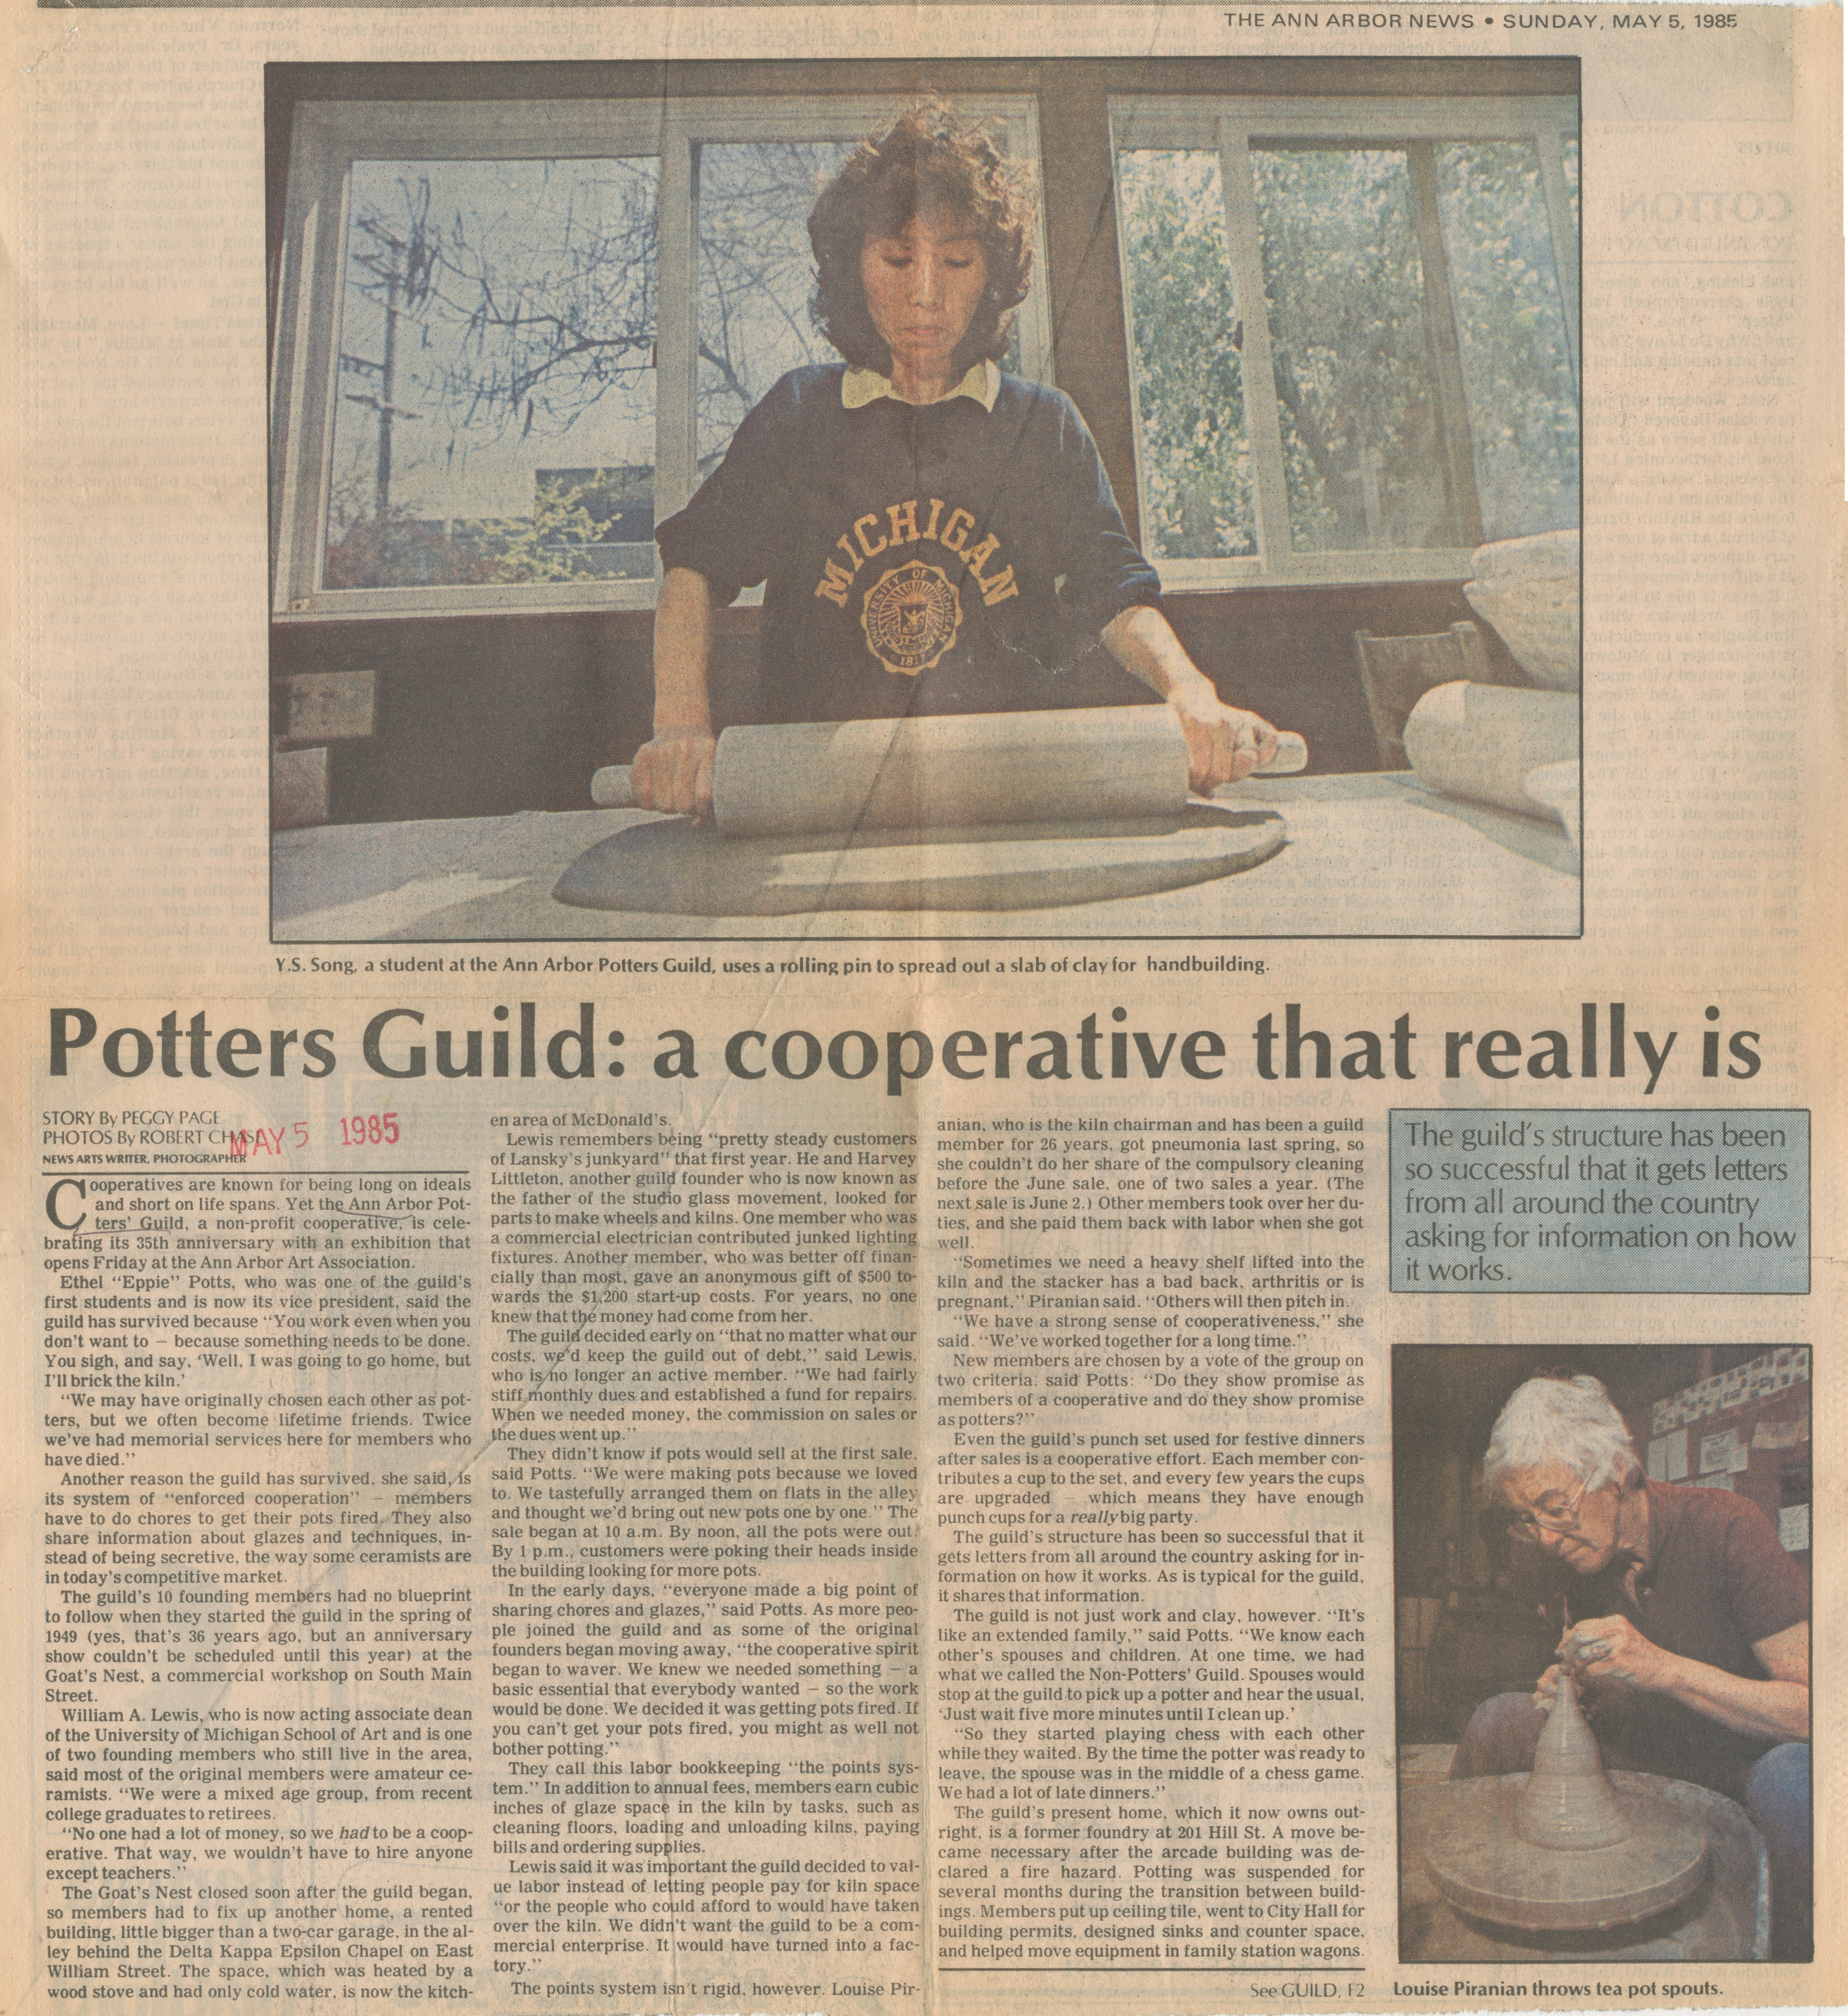 Potters Guild: a cooperative that really is image